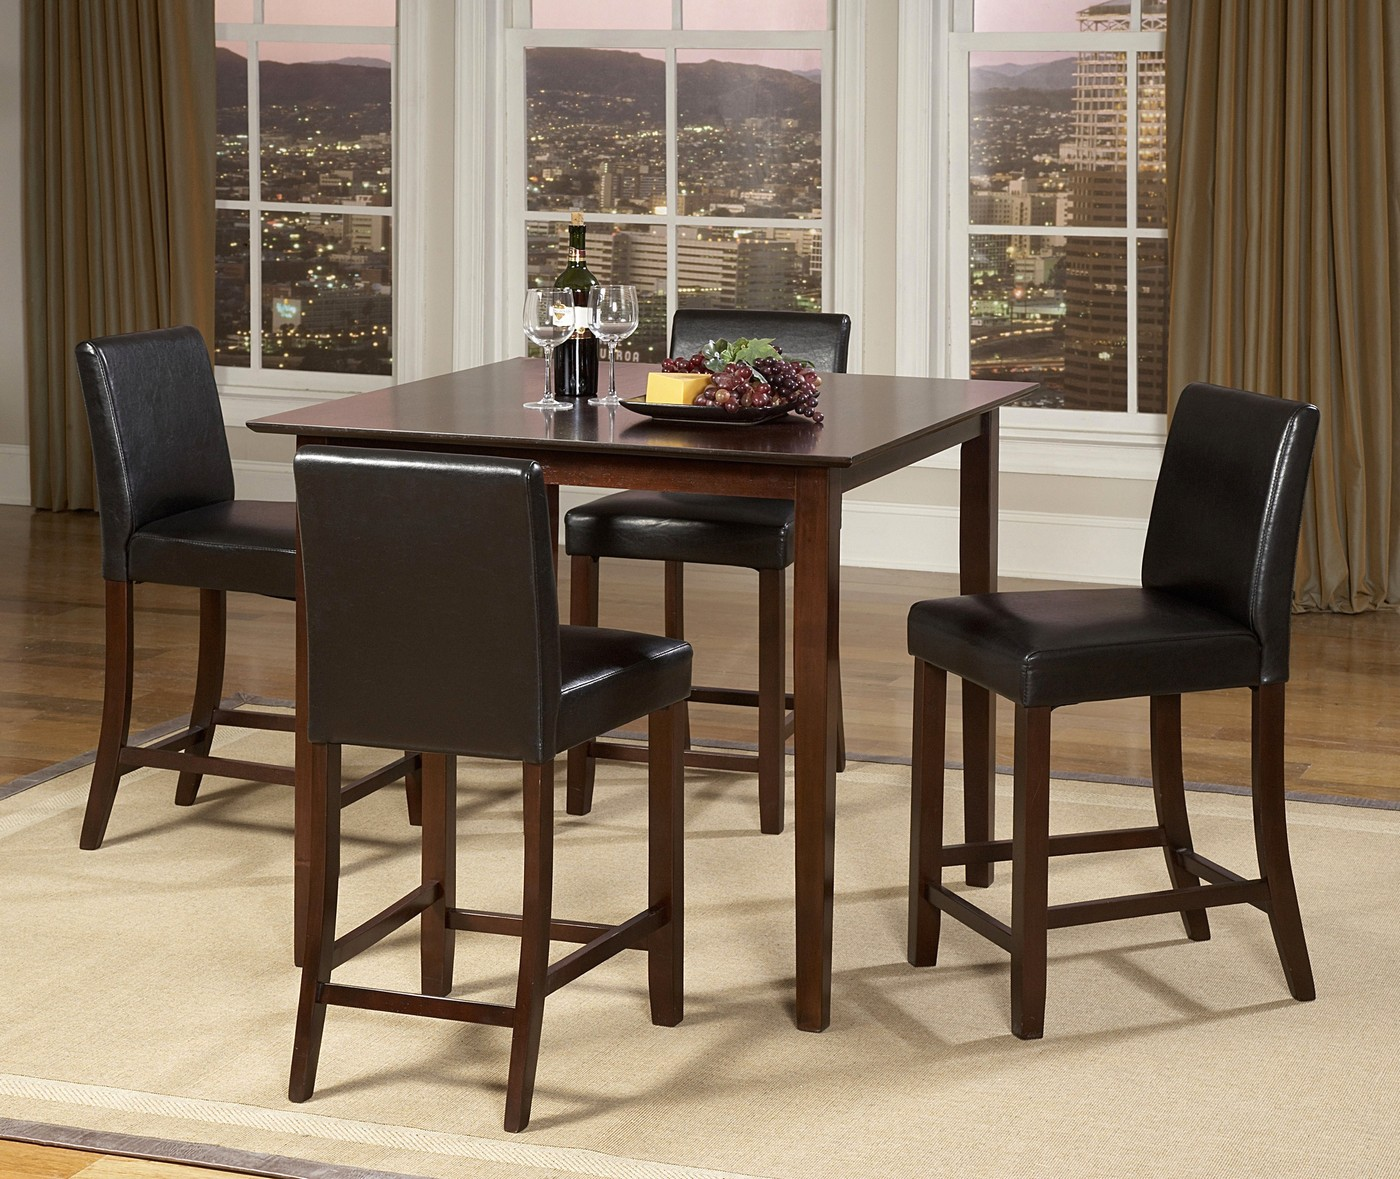 Piece Counter Height Dining Room Set Square Table Cherry Finish